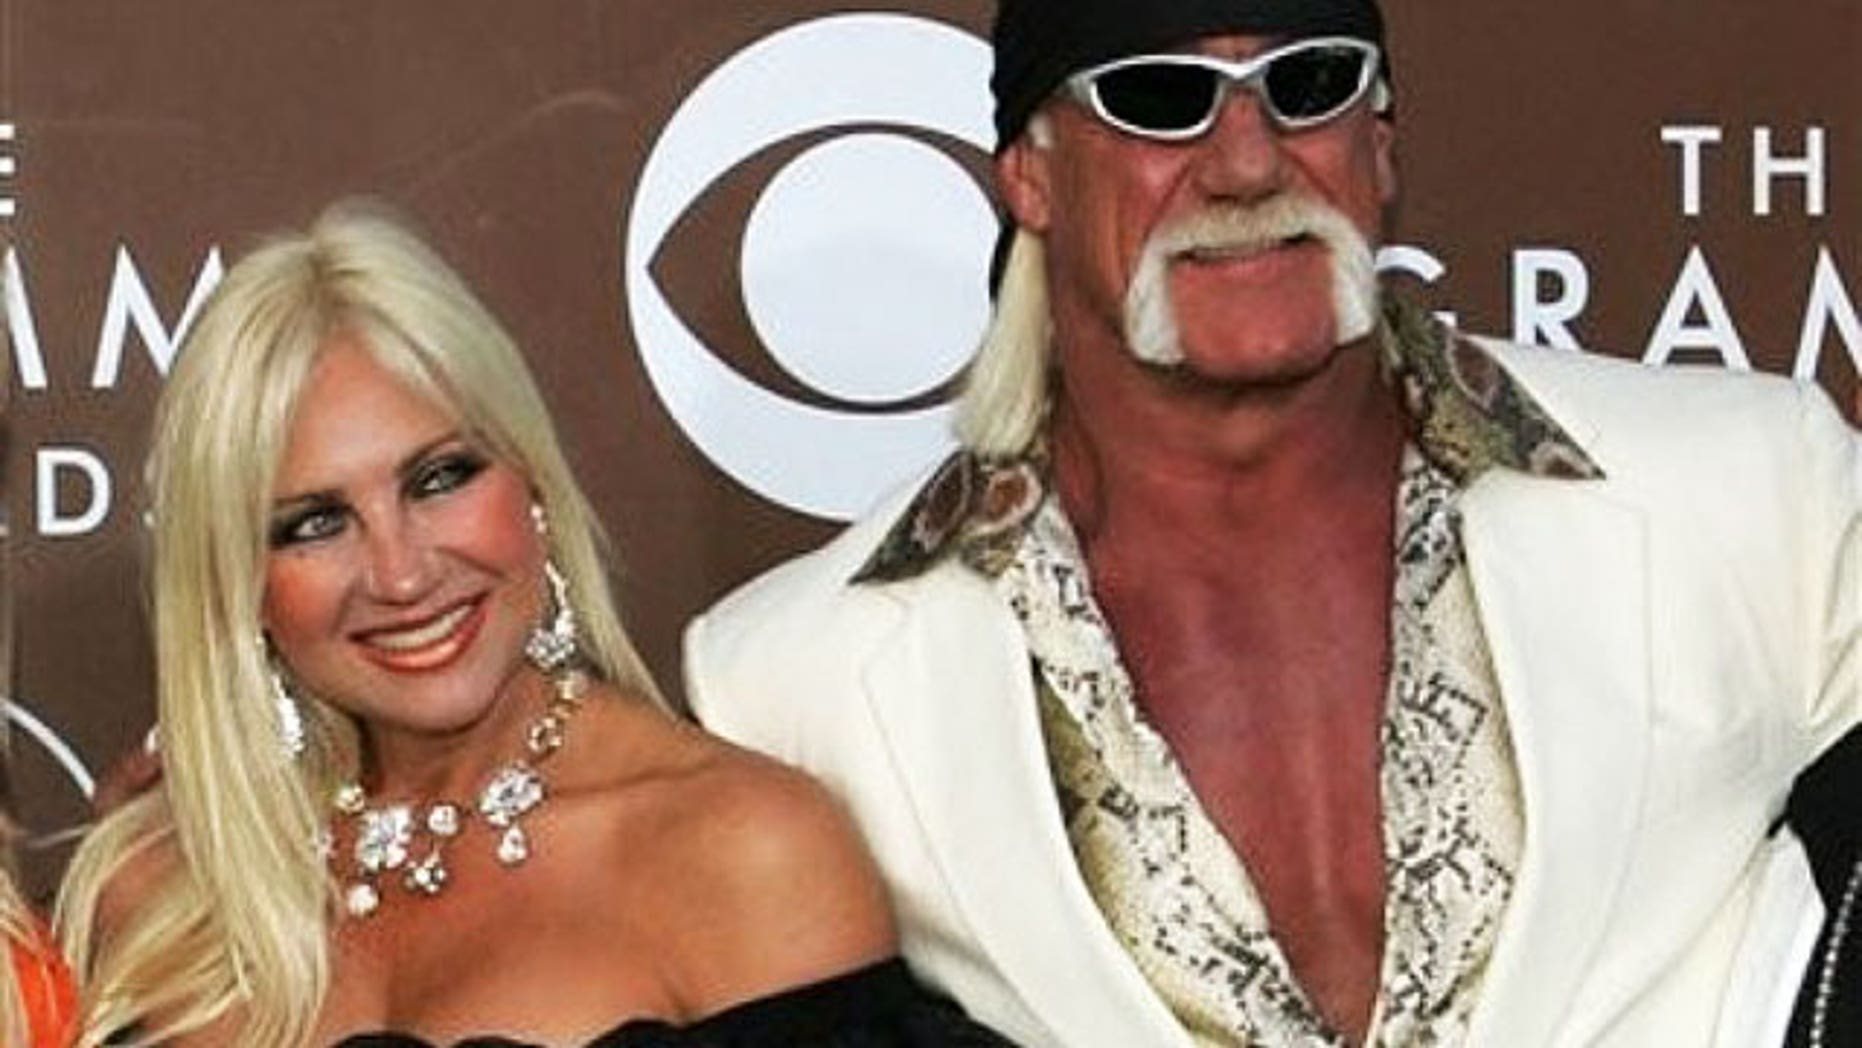 Feb. 8, 2006: Linda and Hulk Hogan attend the Grammy Awards in happier times.